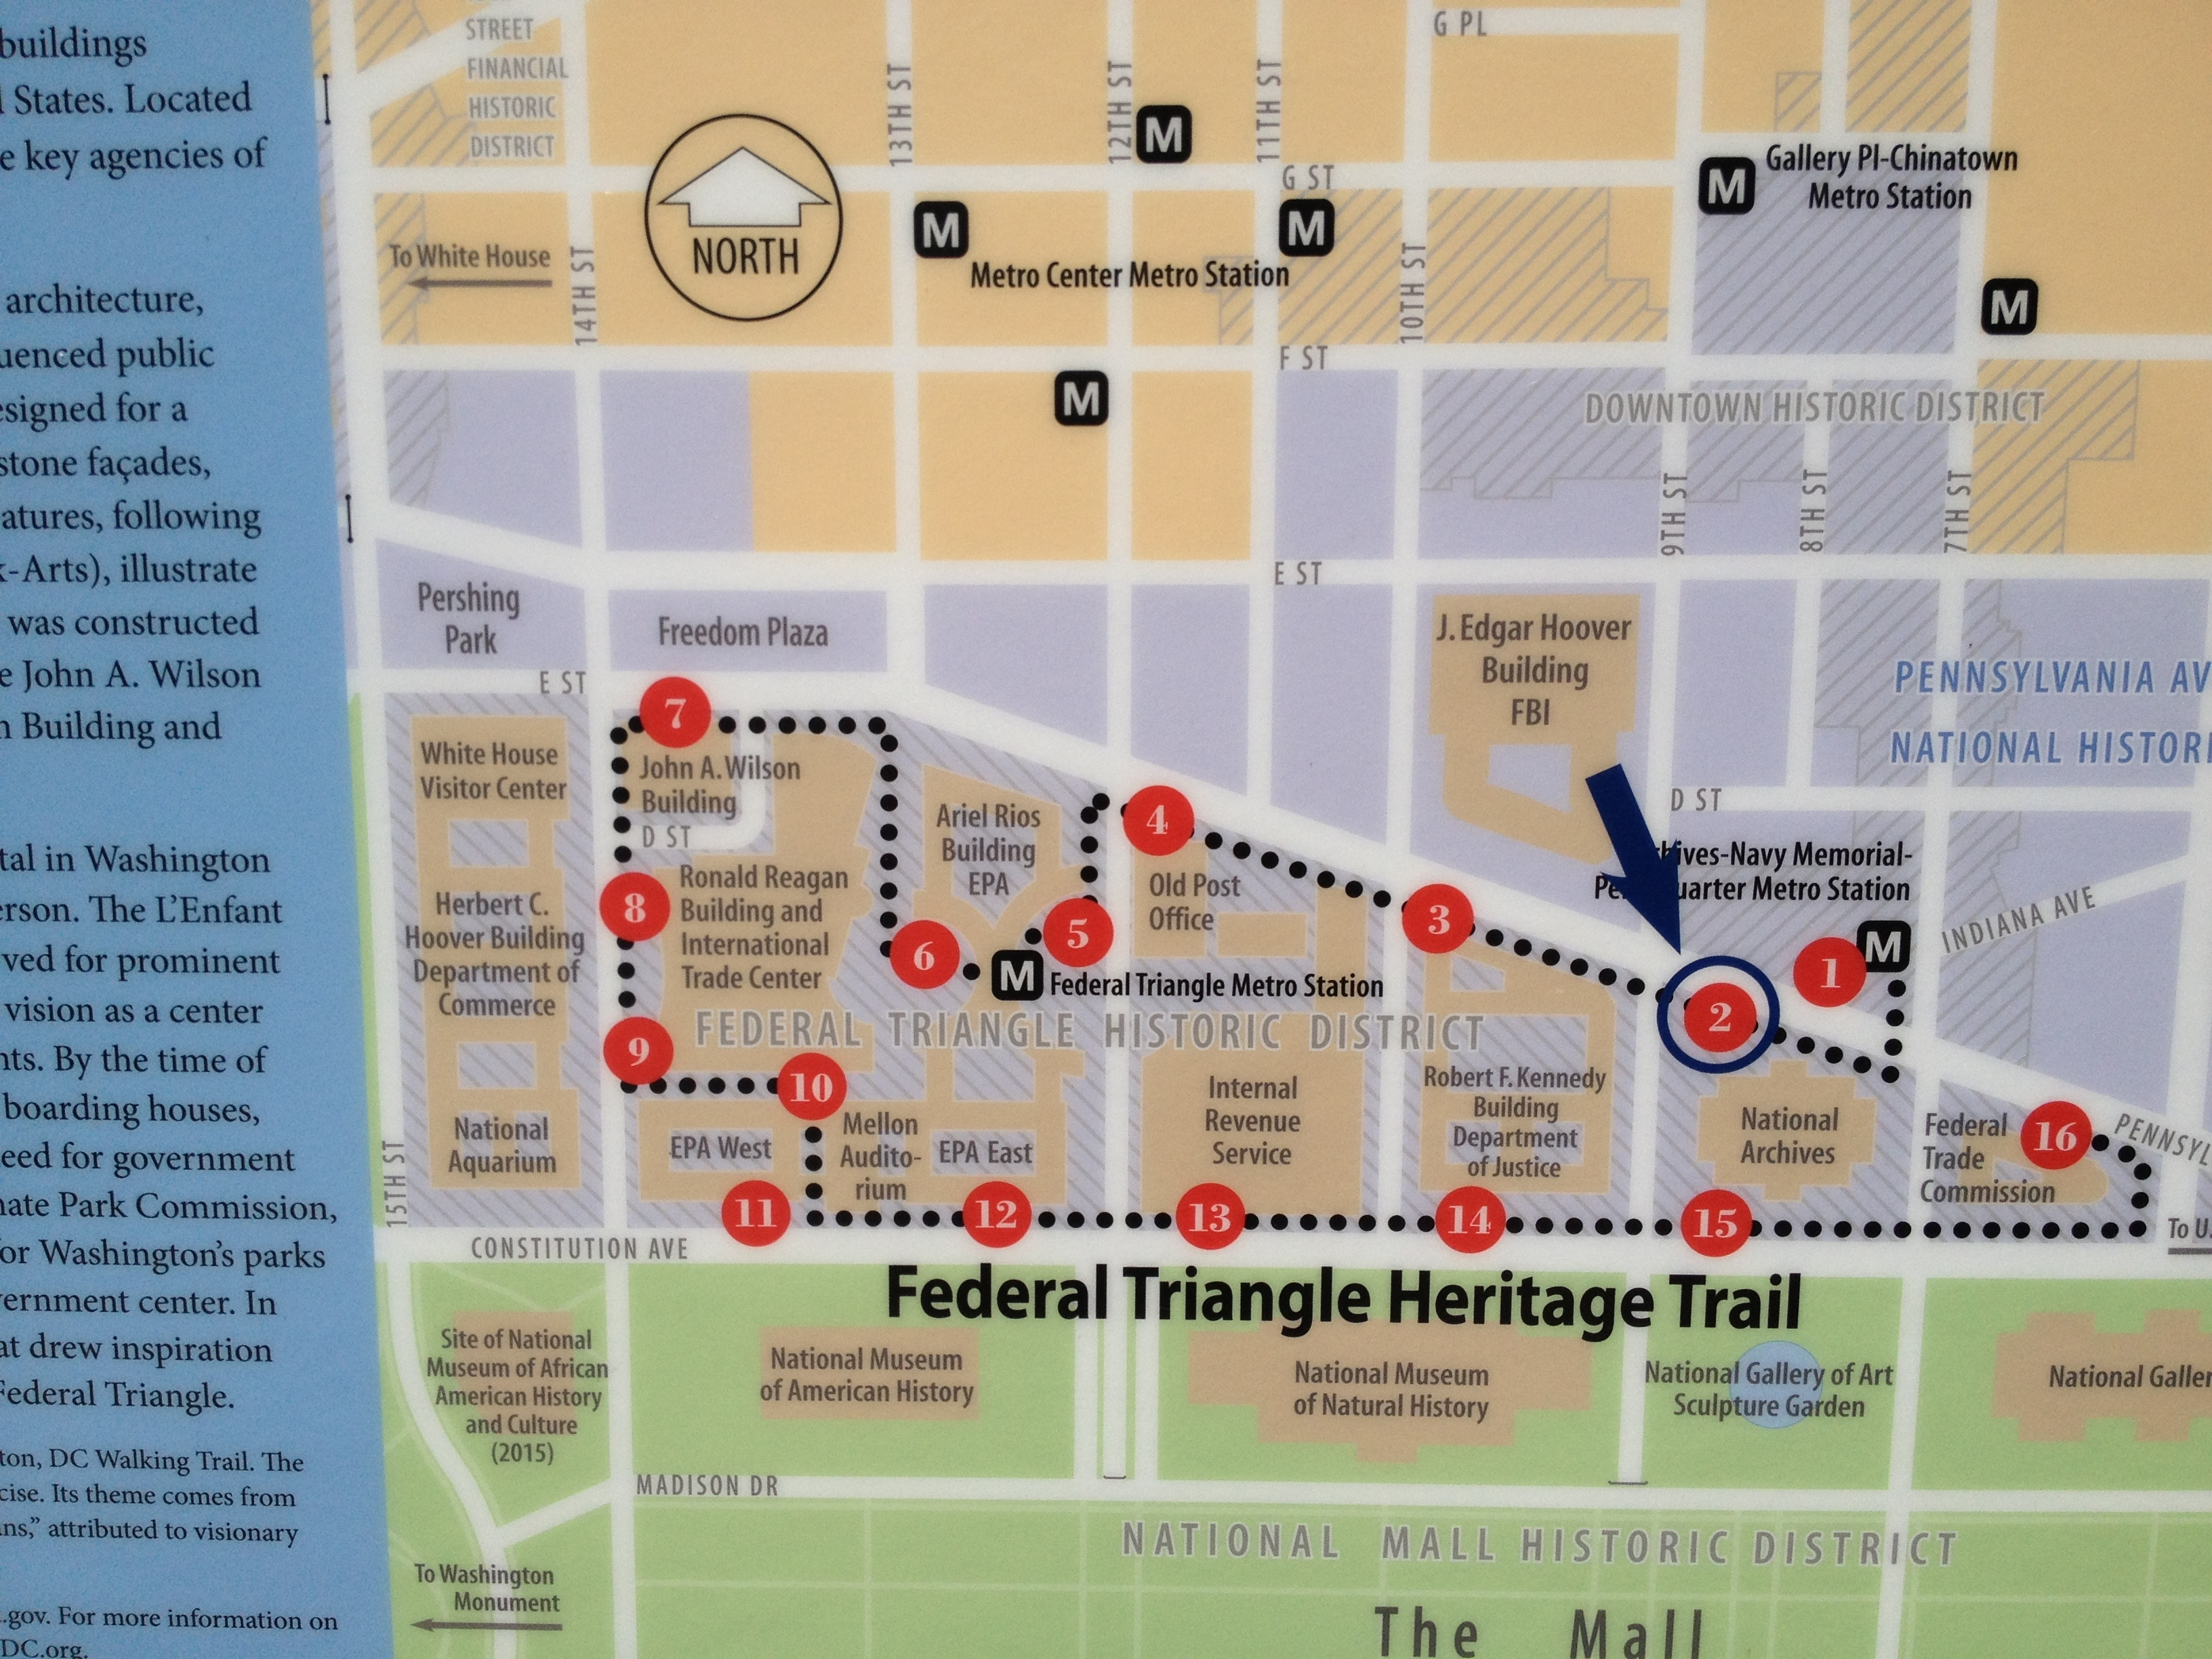 Map of the Federal Triangle Heritage Trail System